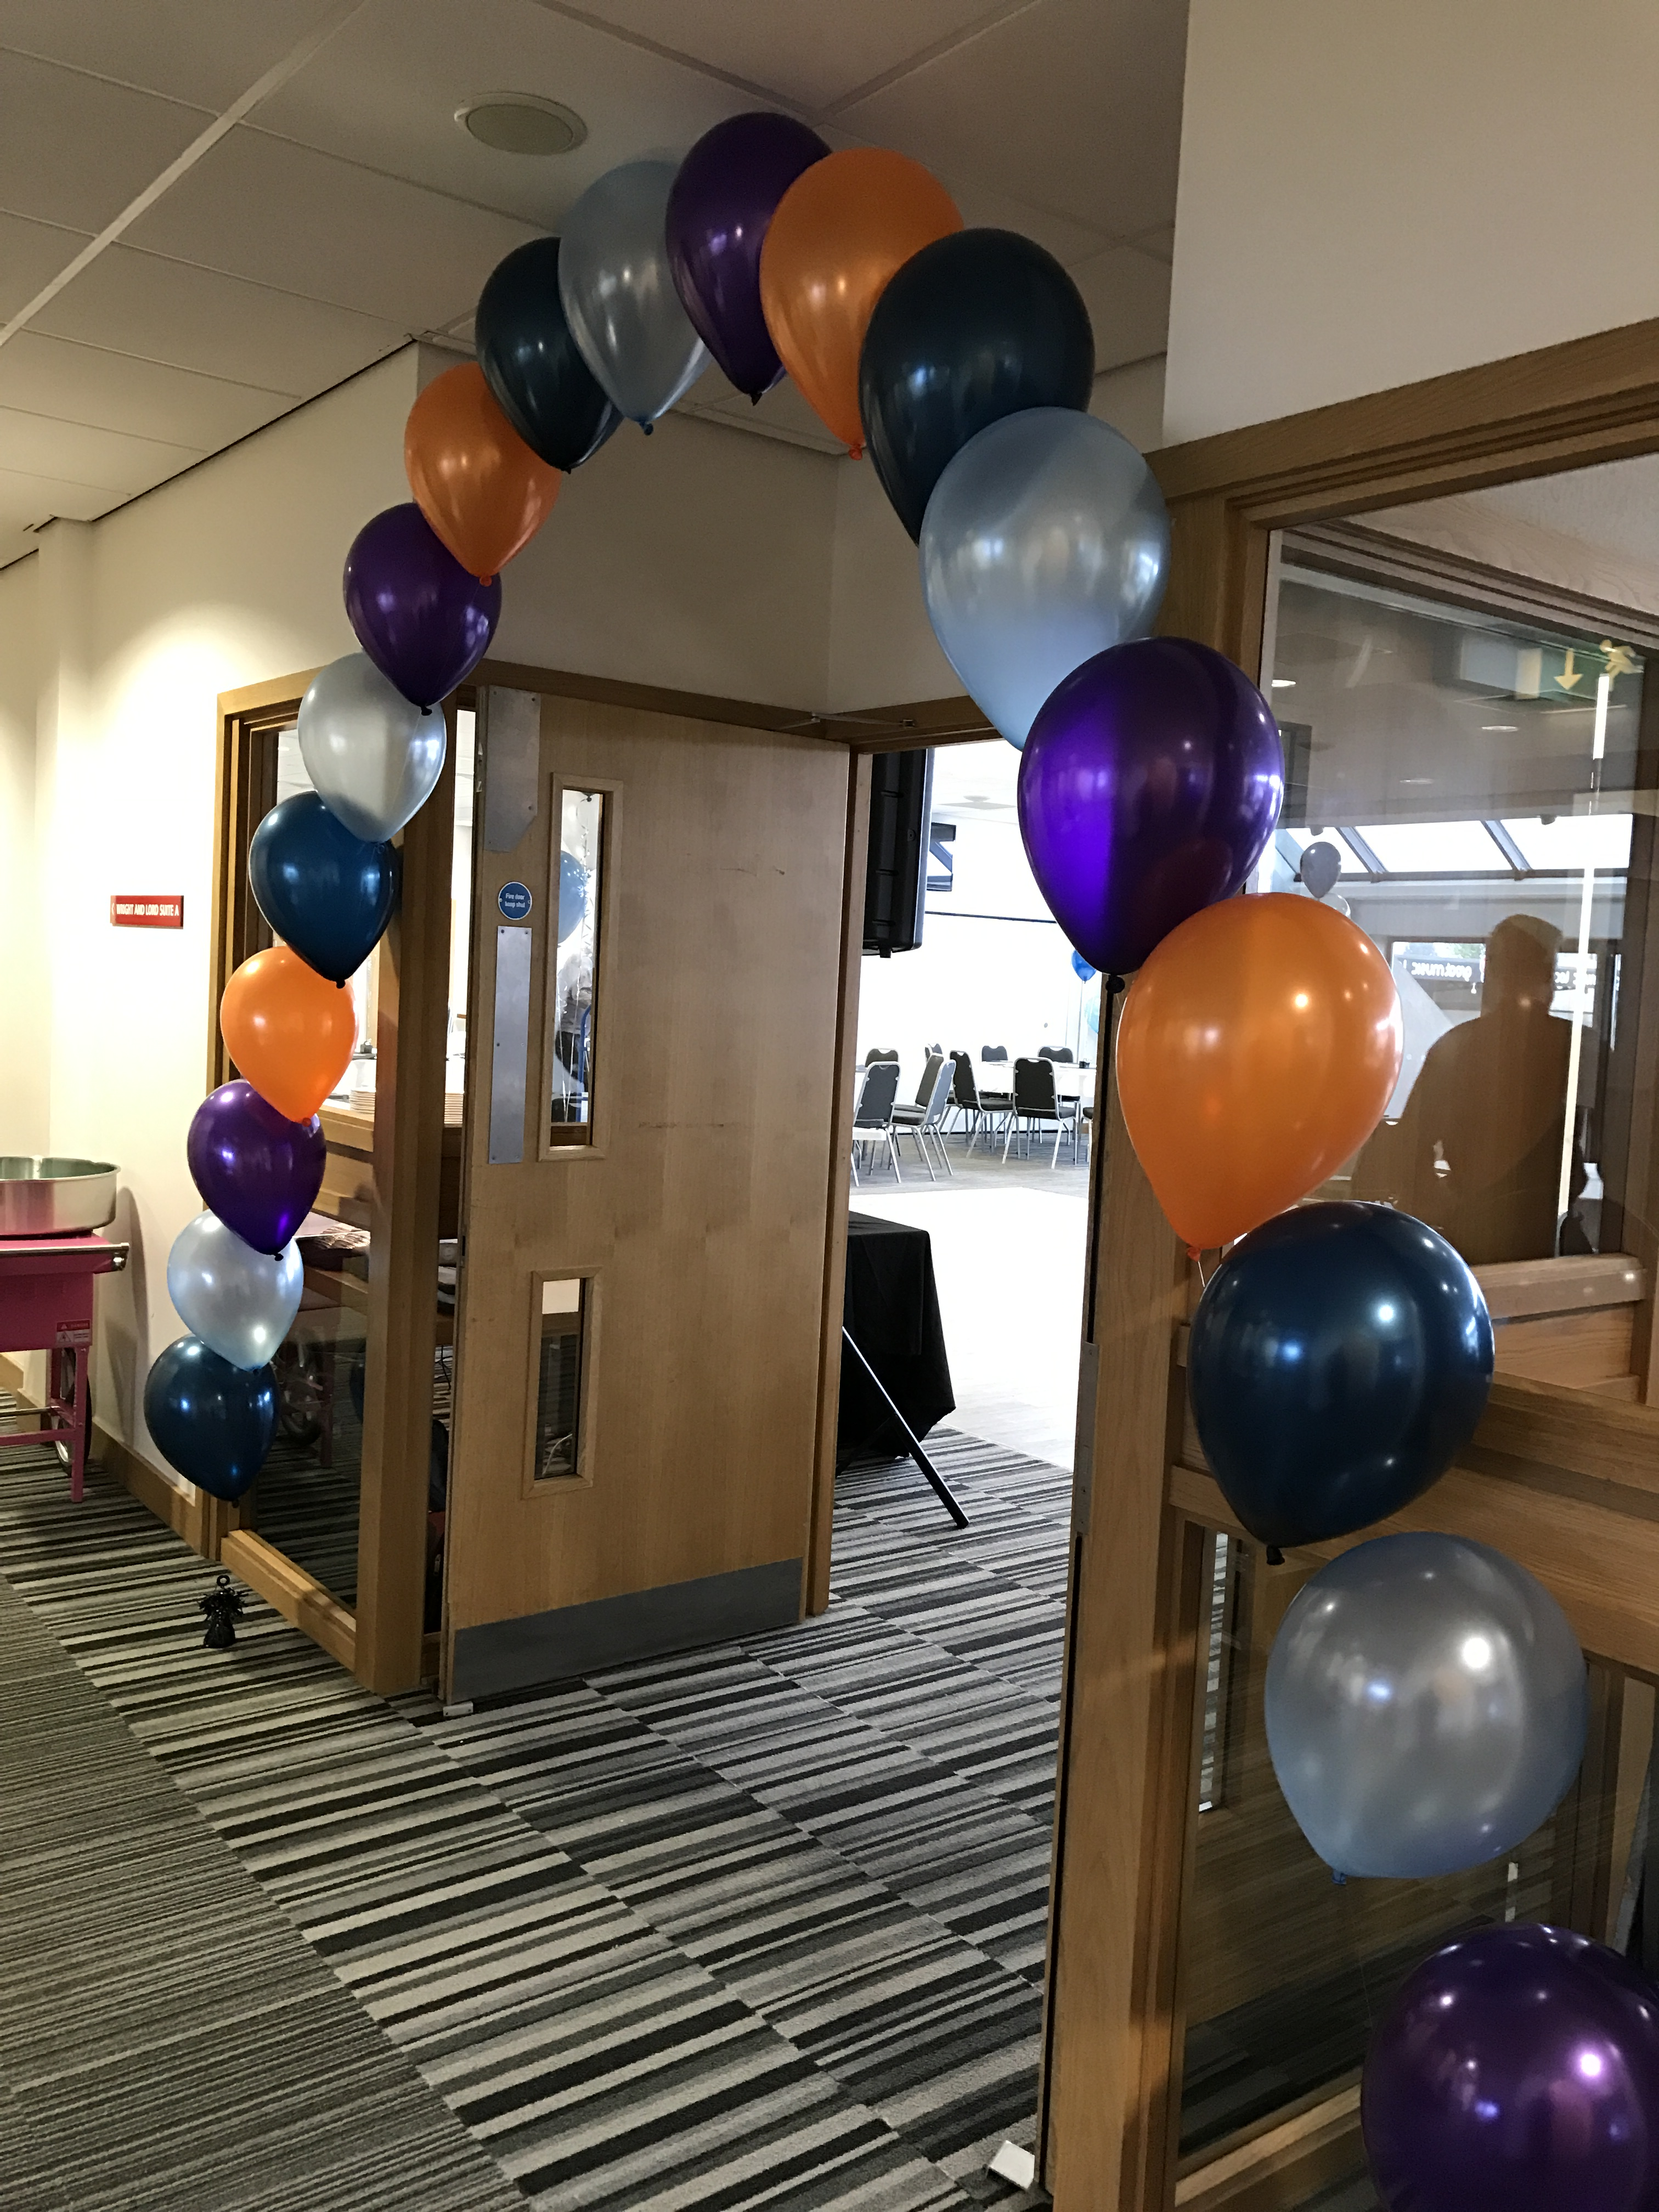 Balloon Arch at the Globe Arena